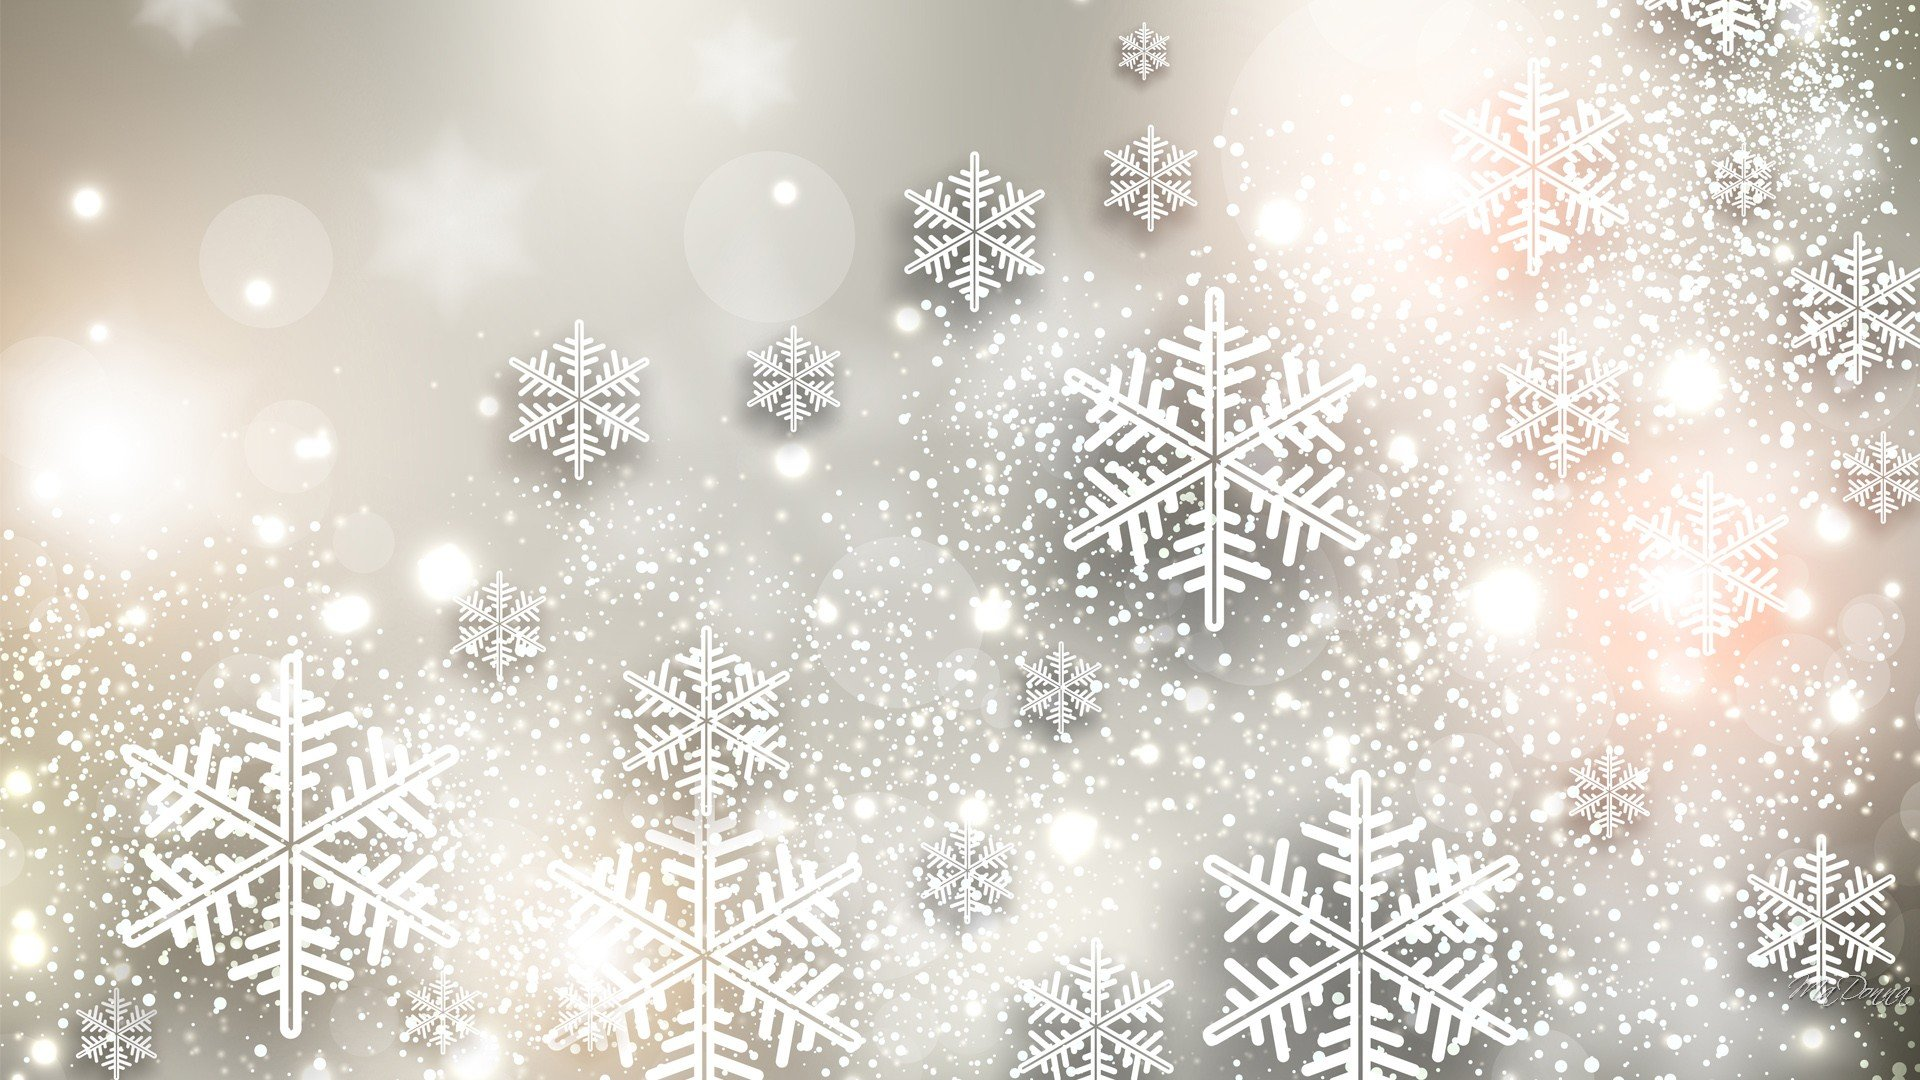 Free download Snowflake wallpaper ID:45407 full hd 1920x1080 for computer